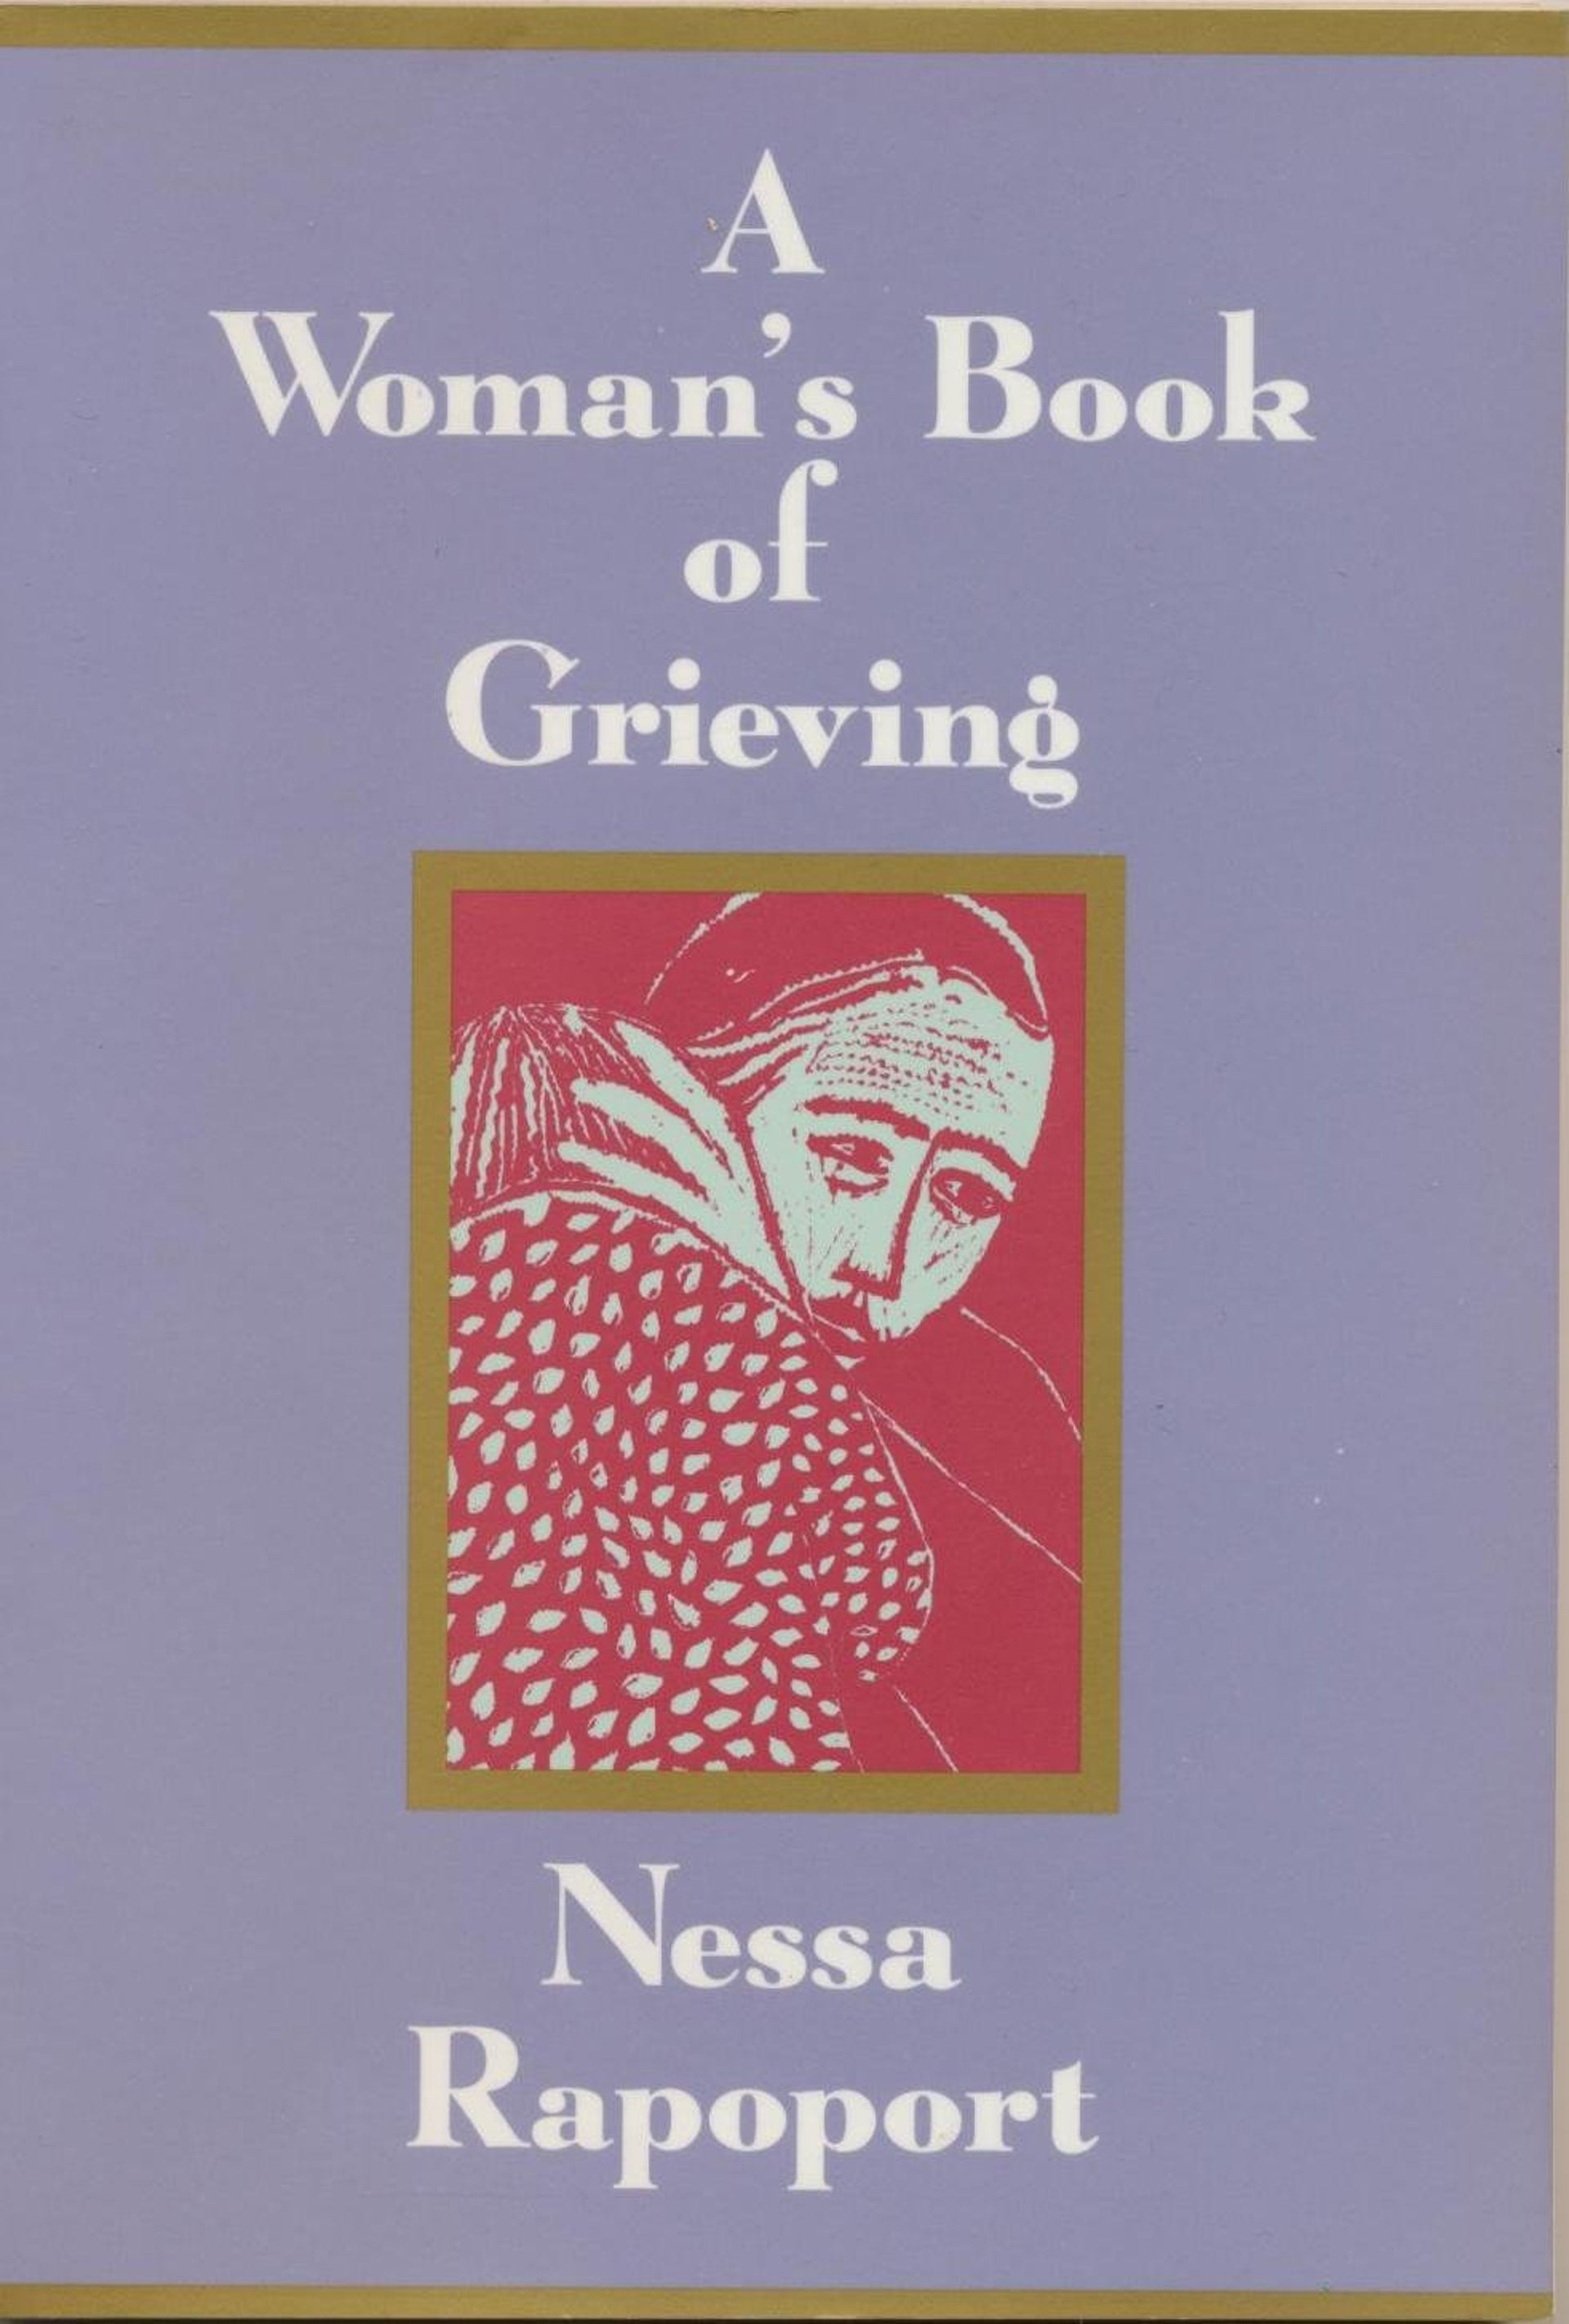 """A Woman's Book of Grieving"" (1994), by Nessa Rapoport."